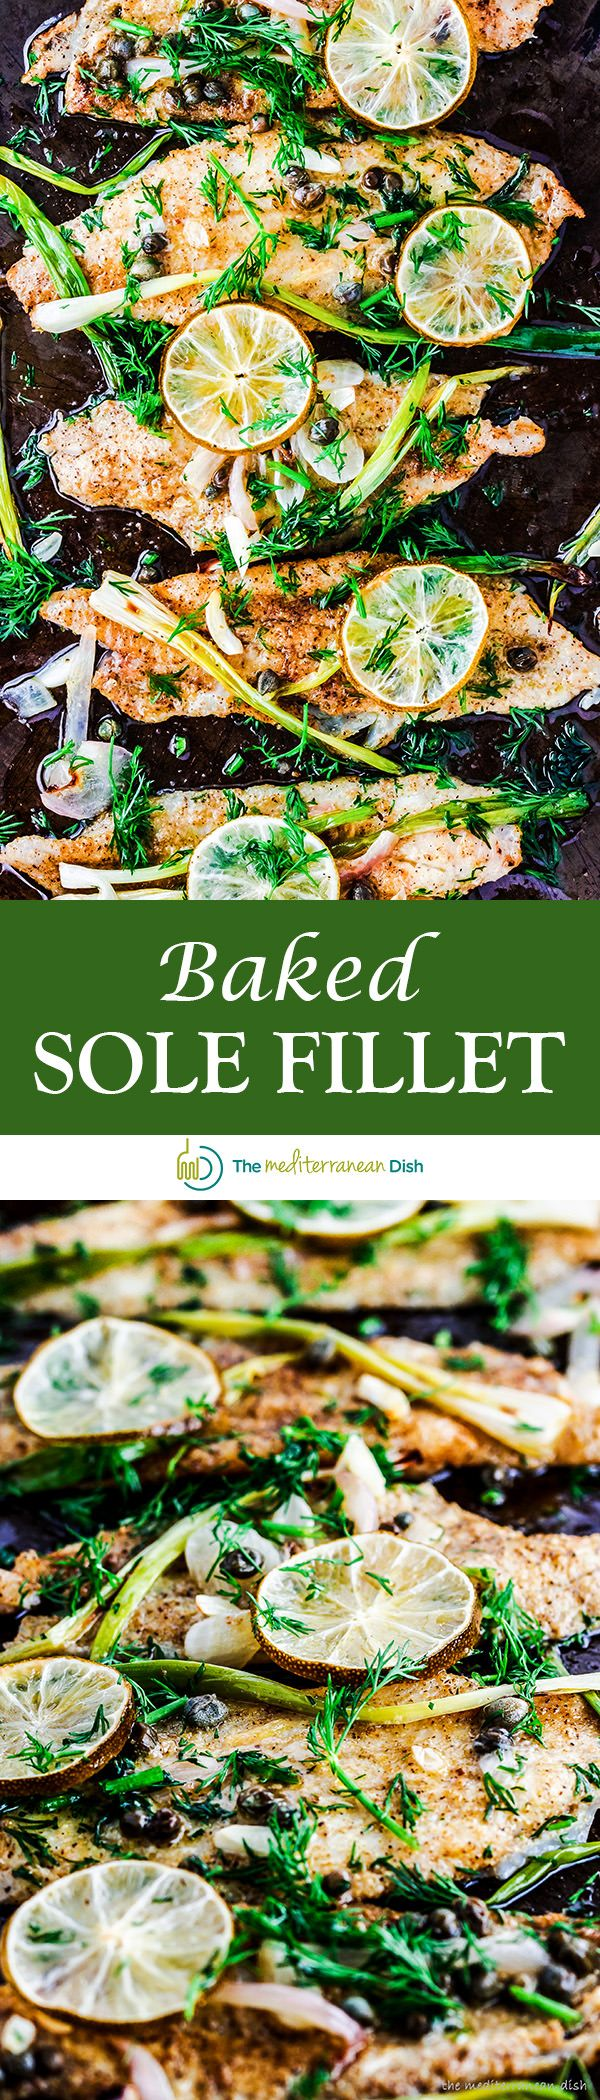 Best 25 sole fish ideas on pinterest sole fillet for Sole fish fillet